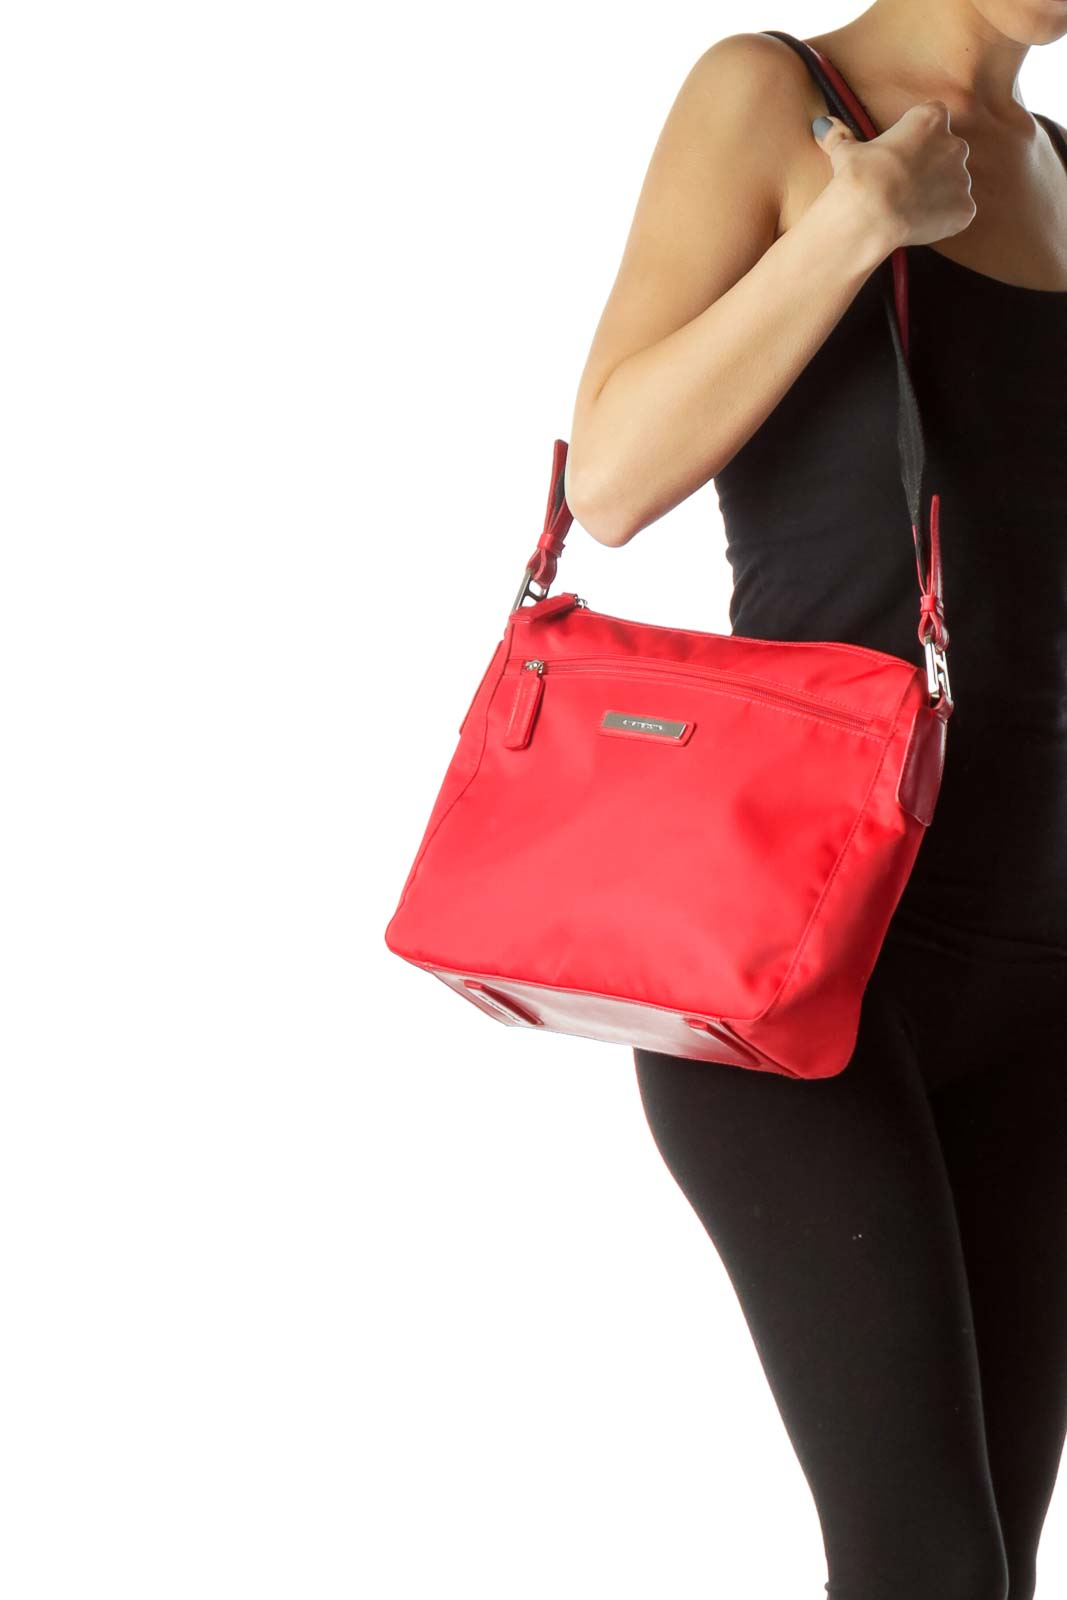 3118d2c108b5 HomeBagsShoulder BagsRed Nylon Shoulder Bag. Previous. Wristwatch by  Versace. Wristwatch by Versace. Wristwatch by Versace